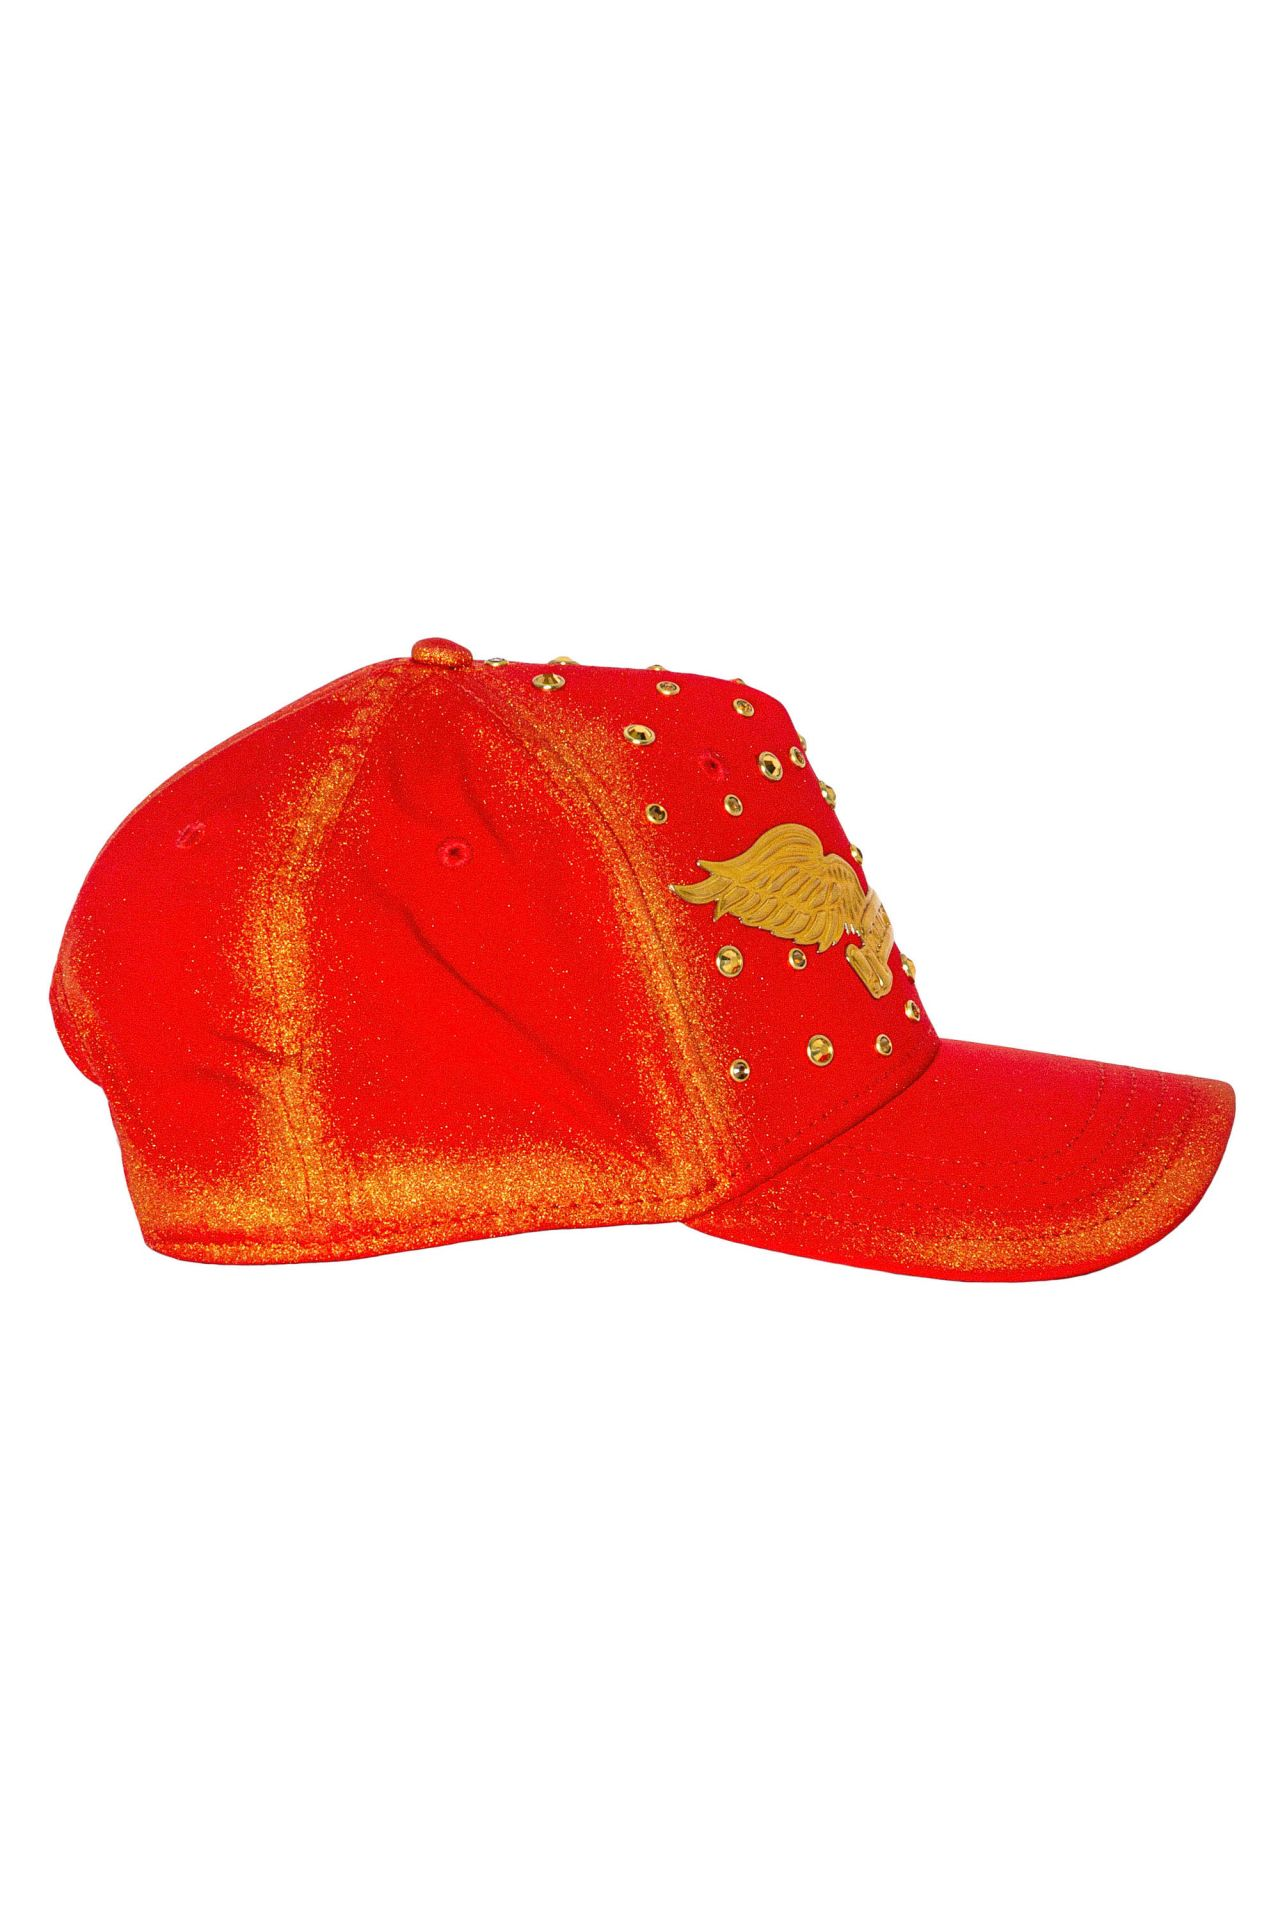 GOLD DUST CAP IN RED WITH GOLD WINGS AND SCATTERED CRYSTALS